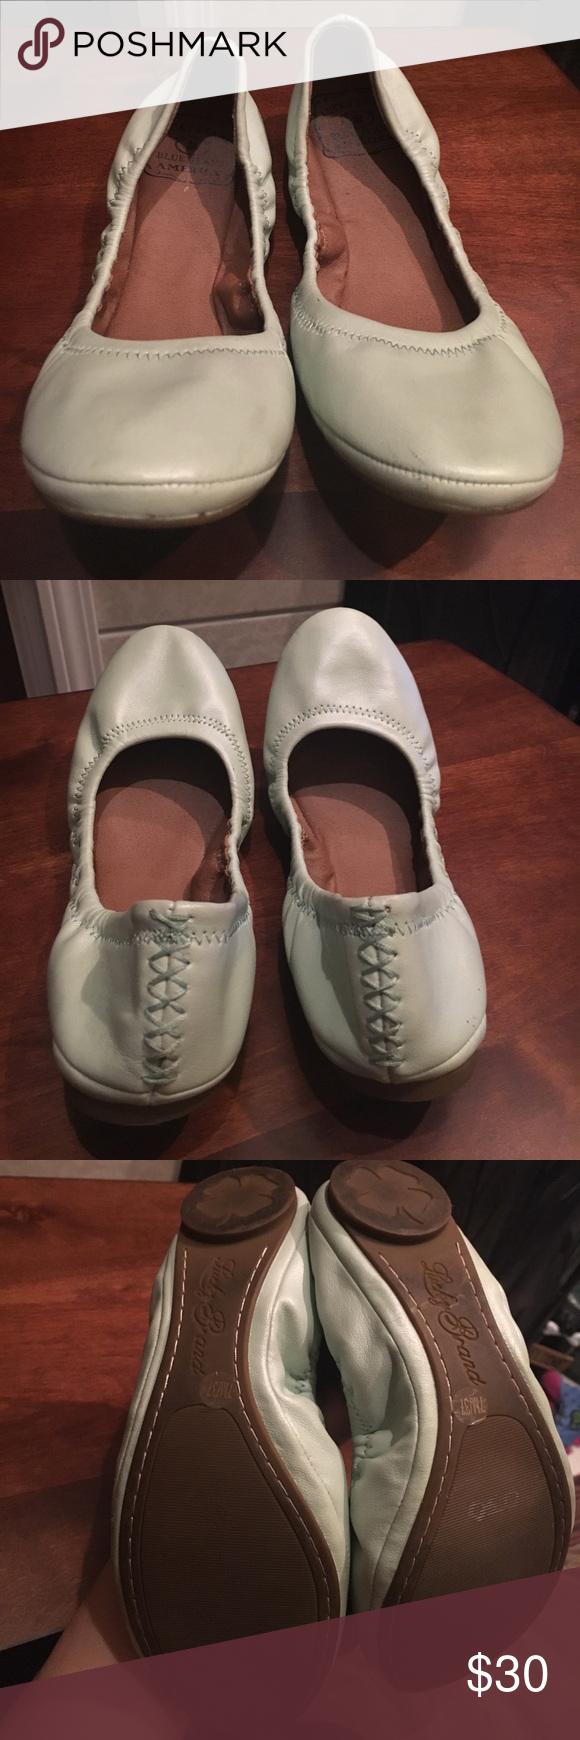 Lucky Brand mint colored flats These Lucky Brand mint colored flats are in great condition. They have been worn two times. There are mild signs of wear and tear. These are great for any occasion during spring or summer! Lucky Brand Shoes Flats & Loafers